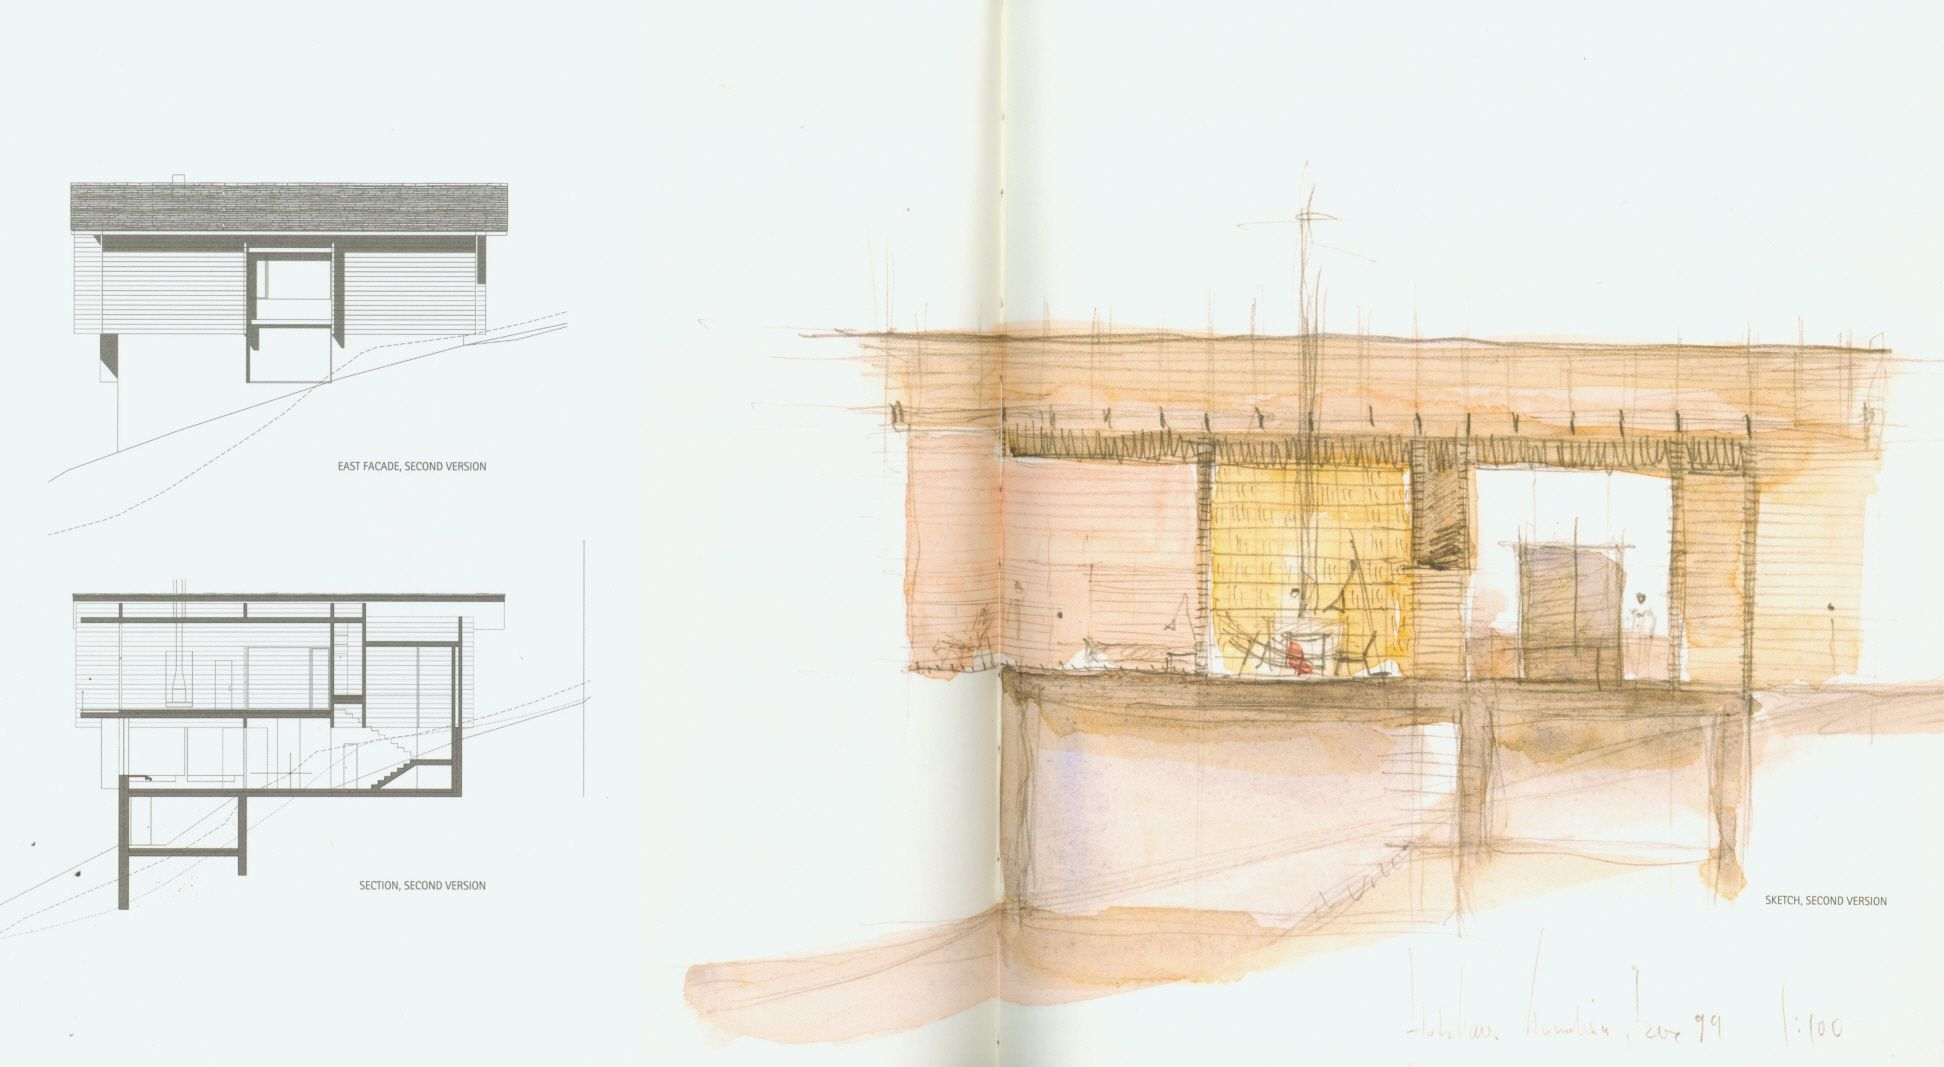 Peter Zumthor Leis House images ピーターズントー, 建築